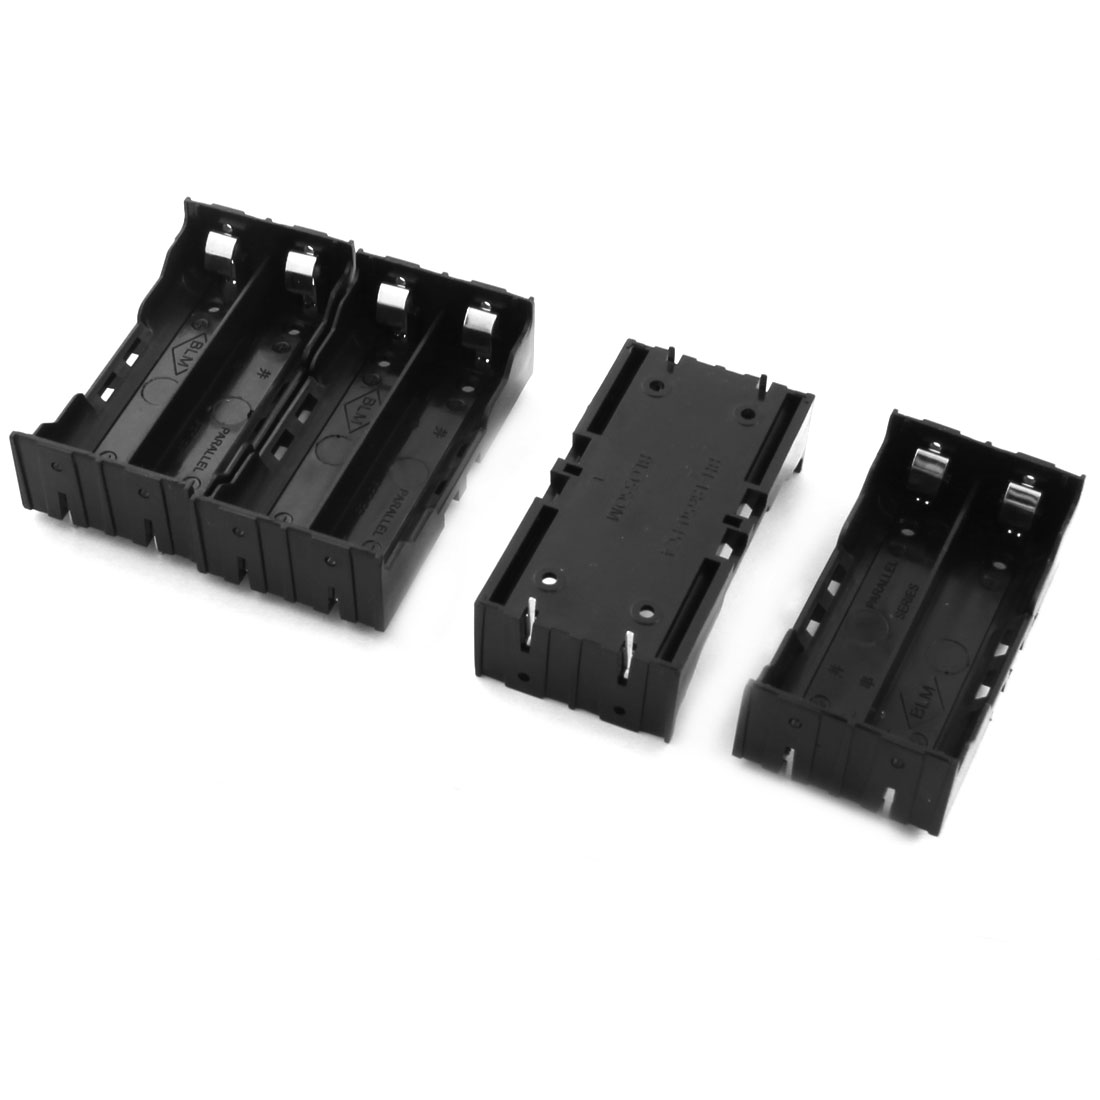 Open Frame 4Pin Plug in Type Black Rectangle Plastic Shell 2 x 3.7V 18650 Battery Holders Cases Boxes 4Pcs